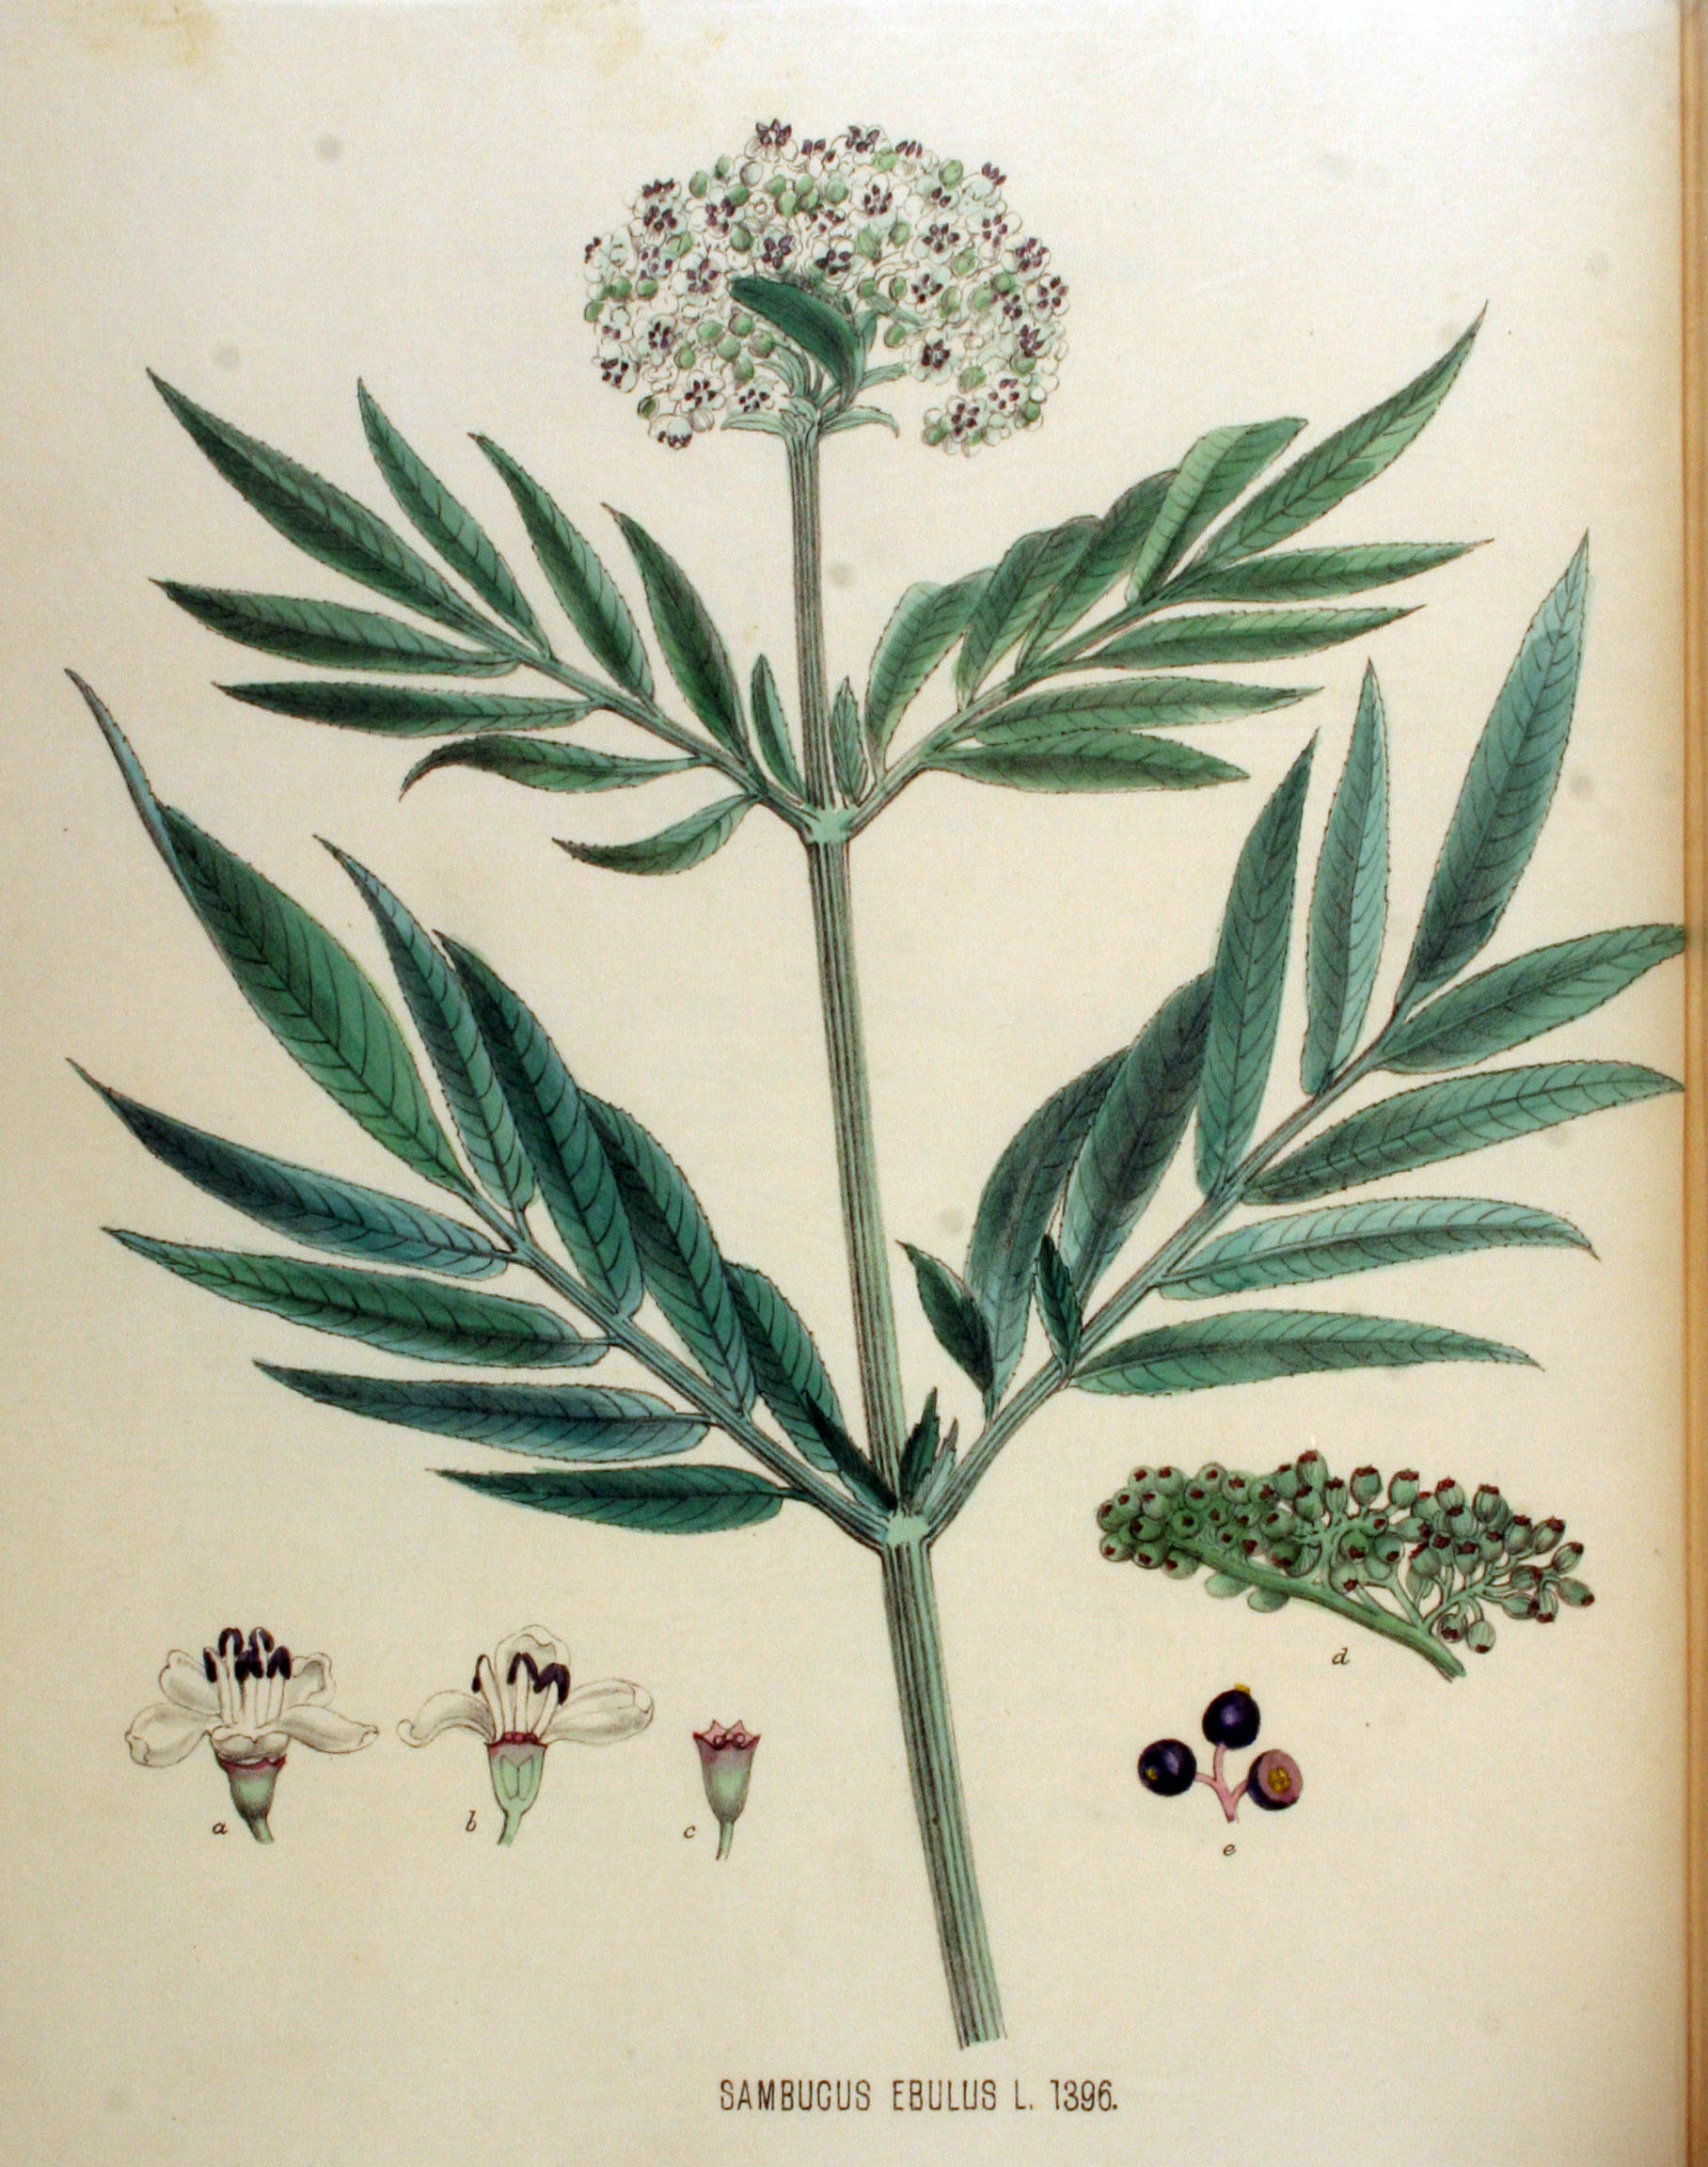 https://upload.wikimedia.org/wikipedia/commons/9/9b/Sambucus_ebulus_%E2%80%94_Flora_Batava_%E2%80%94_Volume_v18.jpg